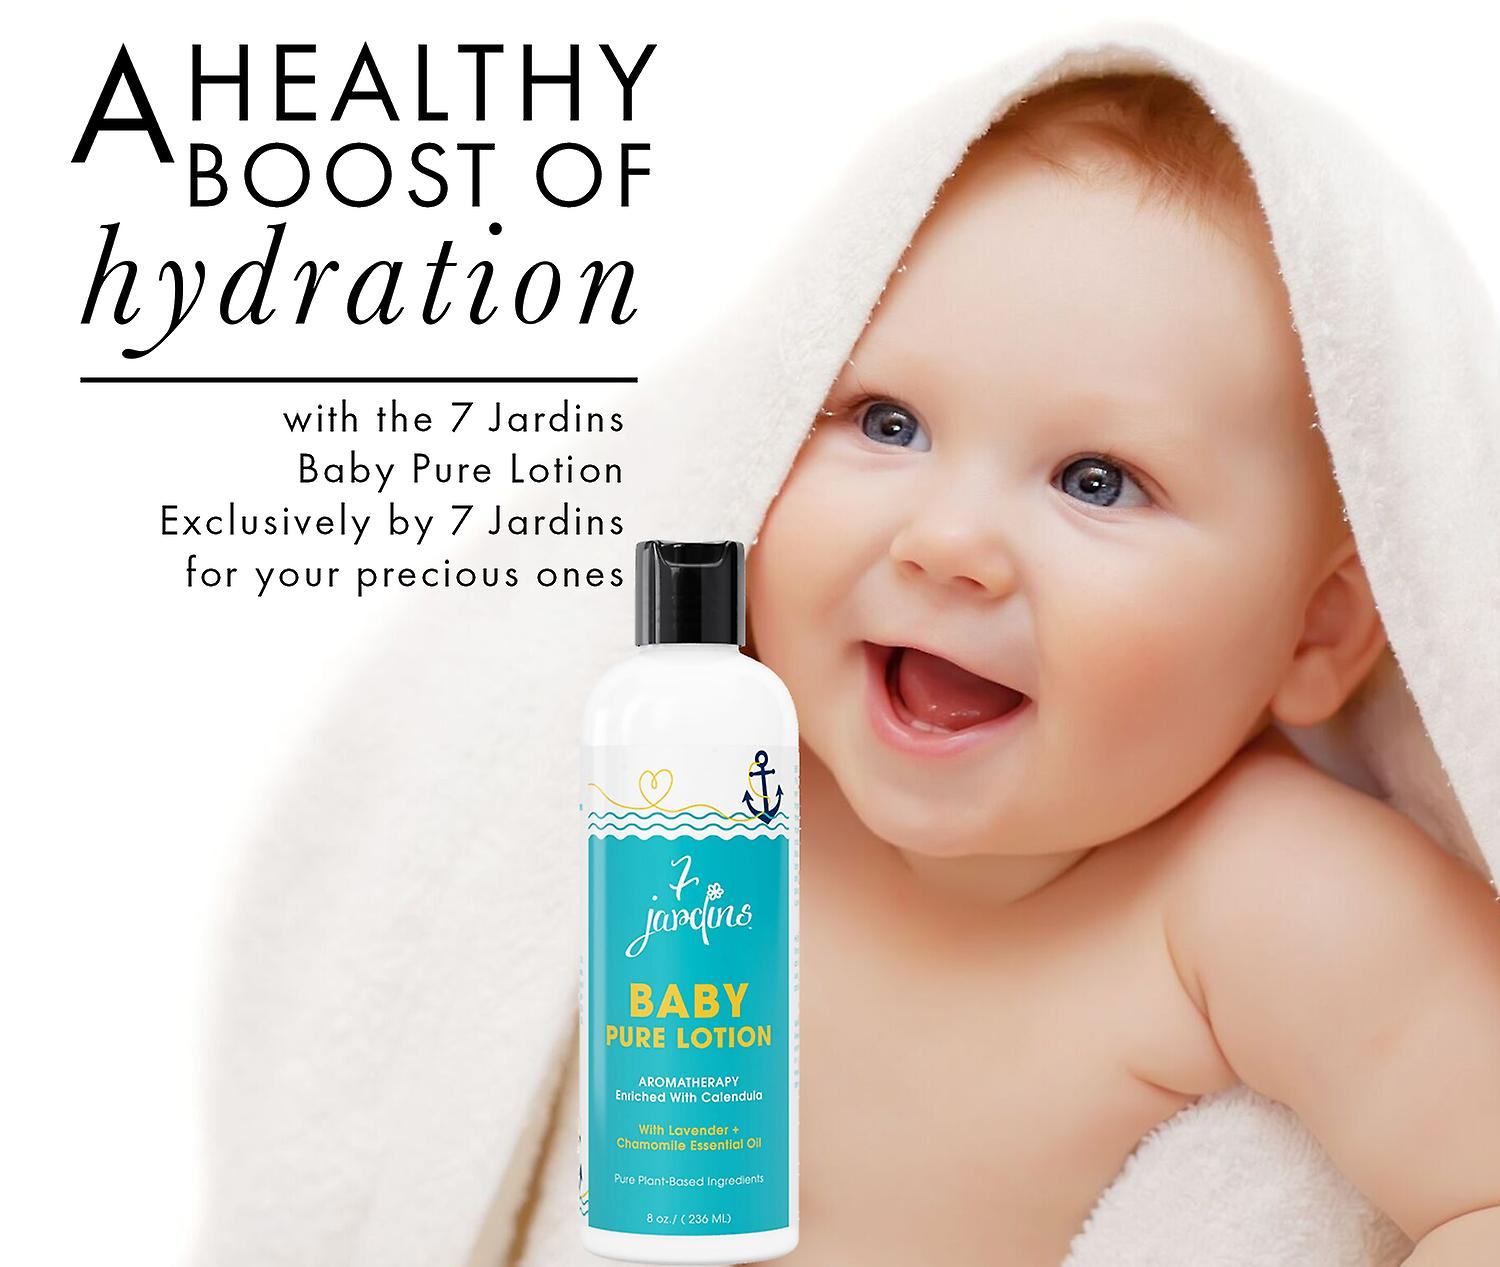 7 Jardins Natural Baby Pure Lotion - Daily Body Moisturizer for All Skin Types Enriched with Calendula, Chamomile and Lavender Essential Oils. 100% Safe and Sulfate Free - 8 oz.